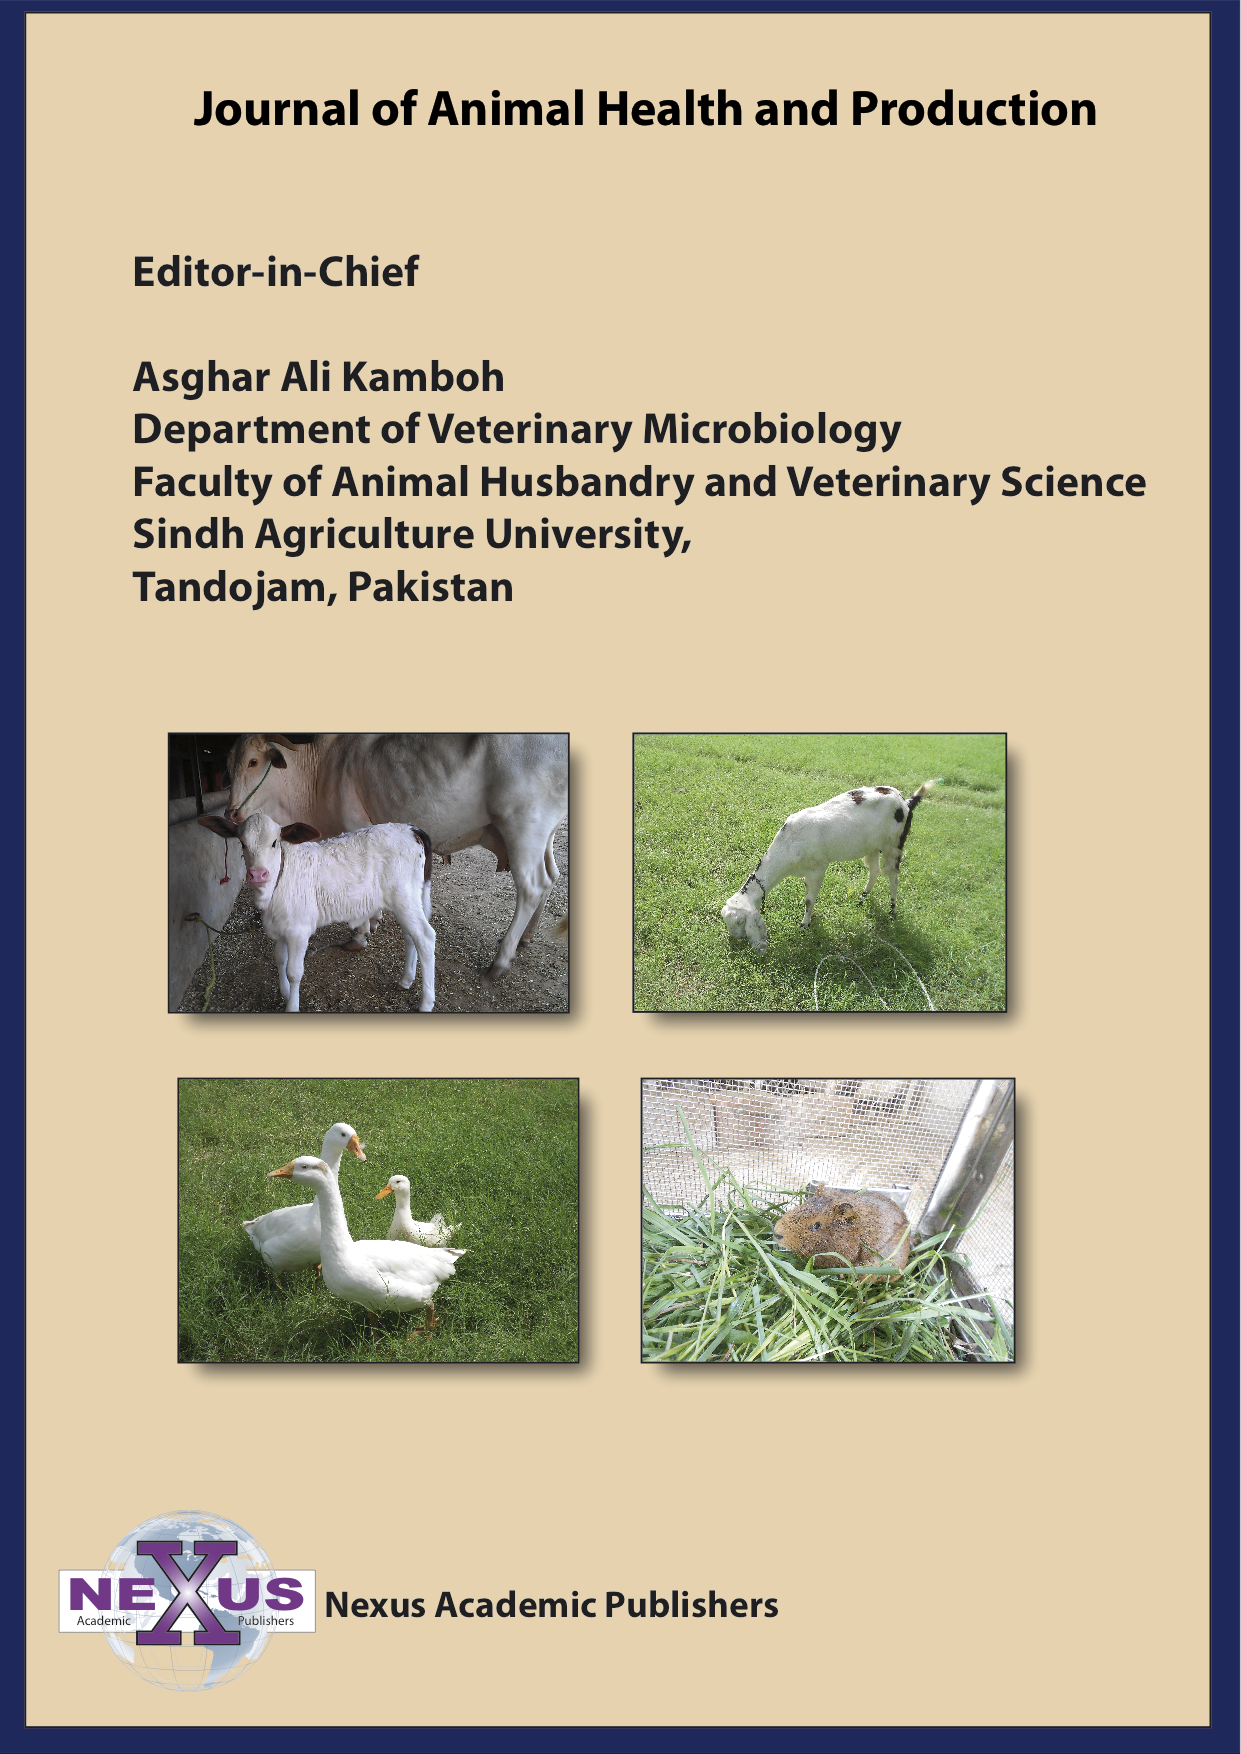 Journal of Animal Health and Production